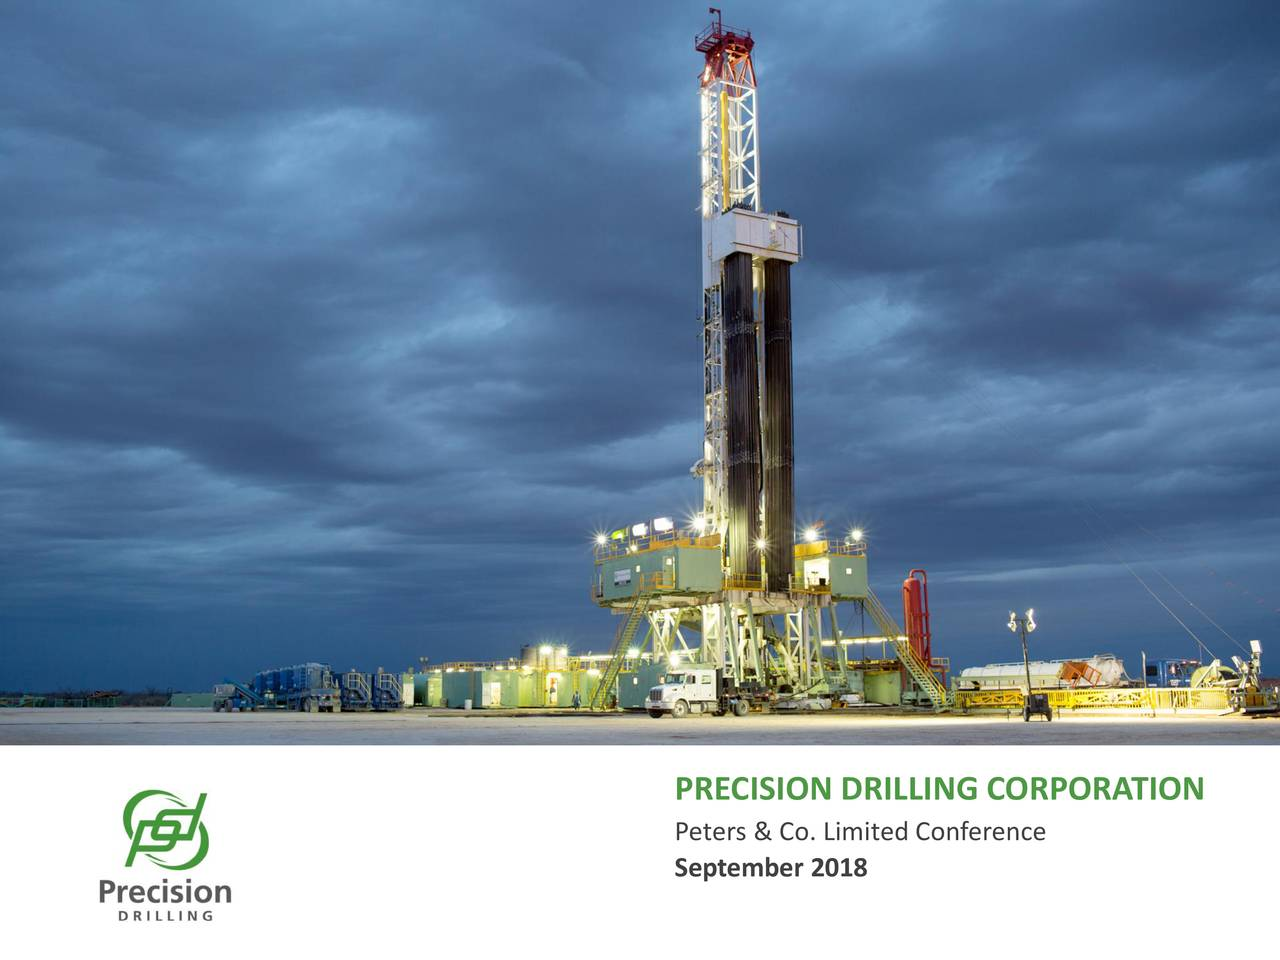 PRECISION DRILLING CORPORATION Peters & Co. Limited Conference September 2018 | 1